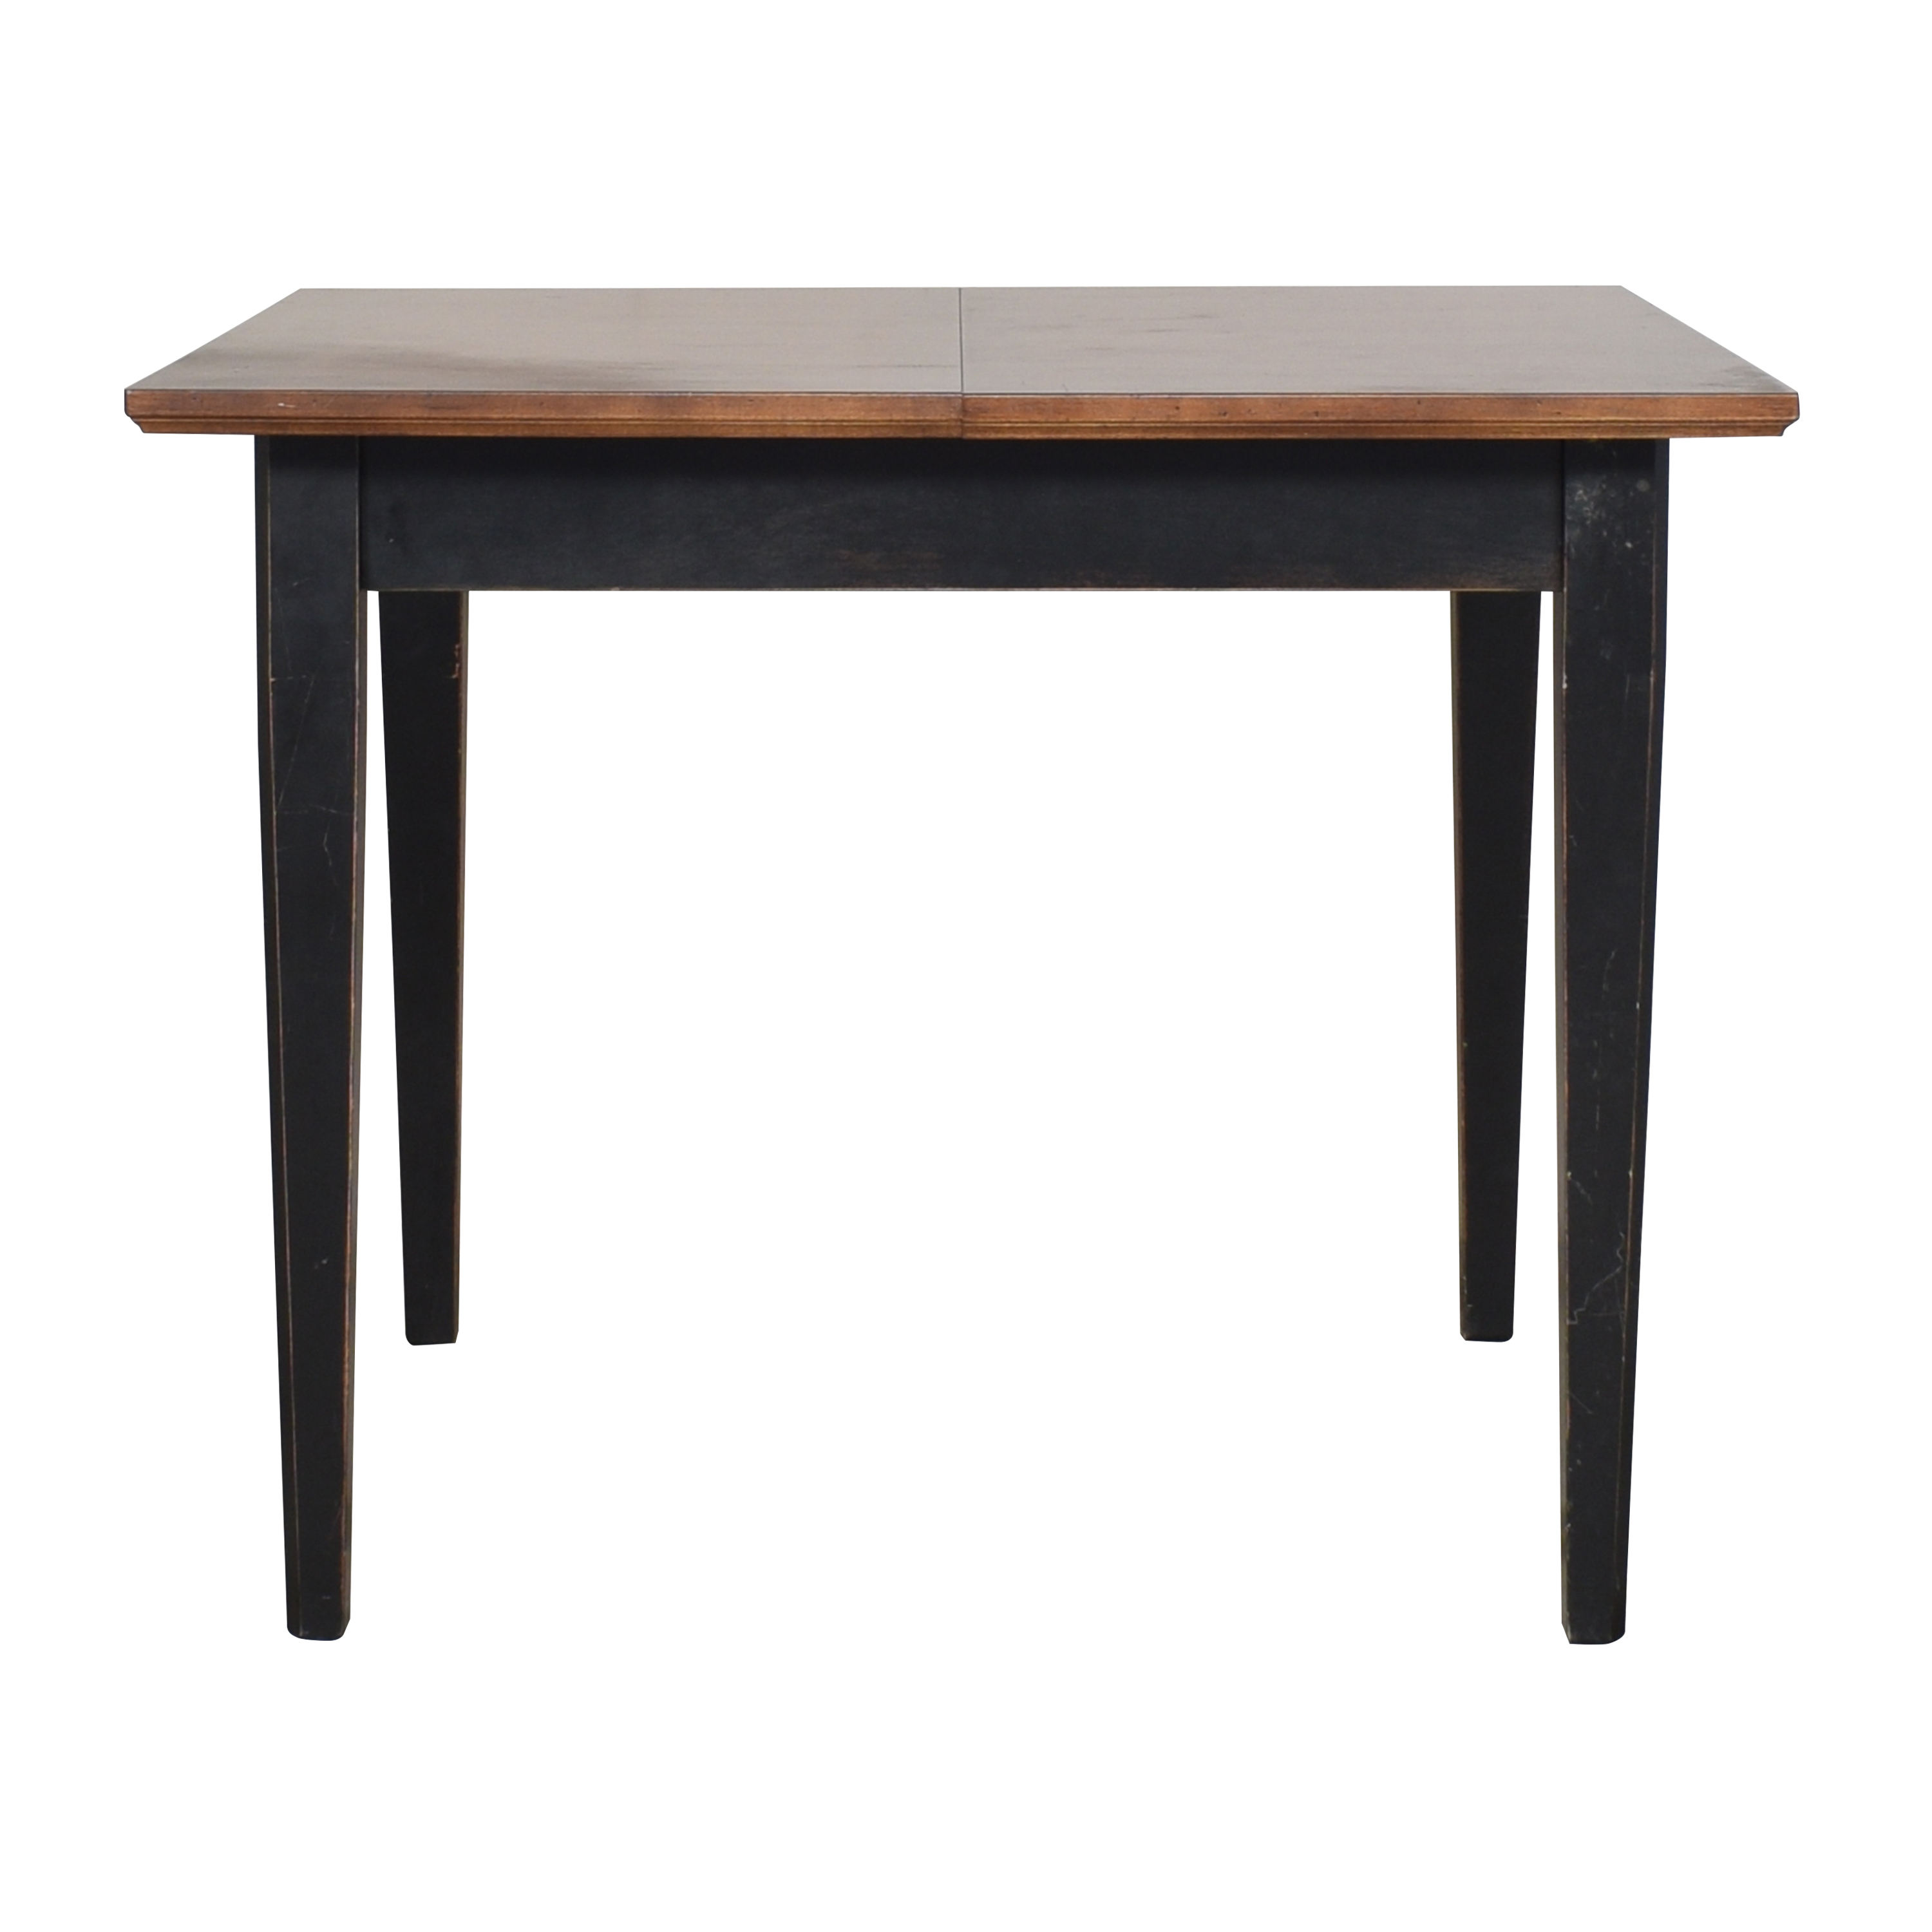 Crate & Barrel Crate and Barrel Extendable Dining Table discount